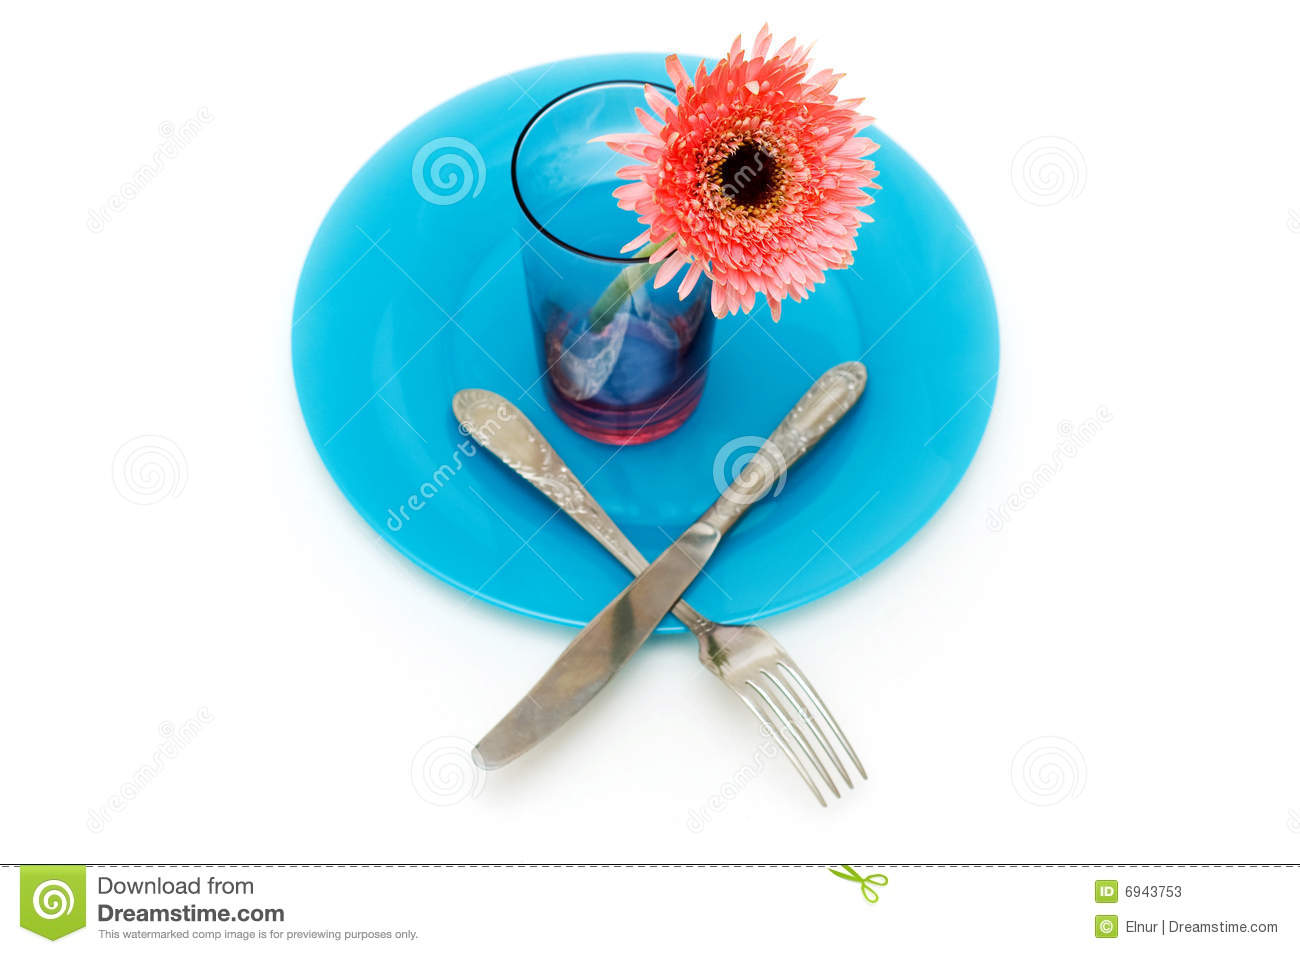 Blue plate and table utensils stock photos image 6943753 for Table utensils